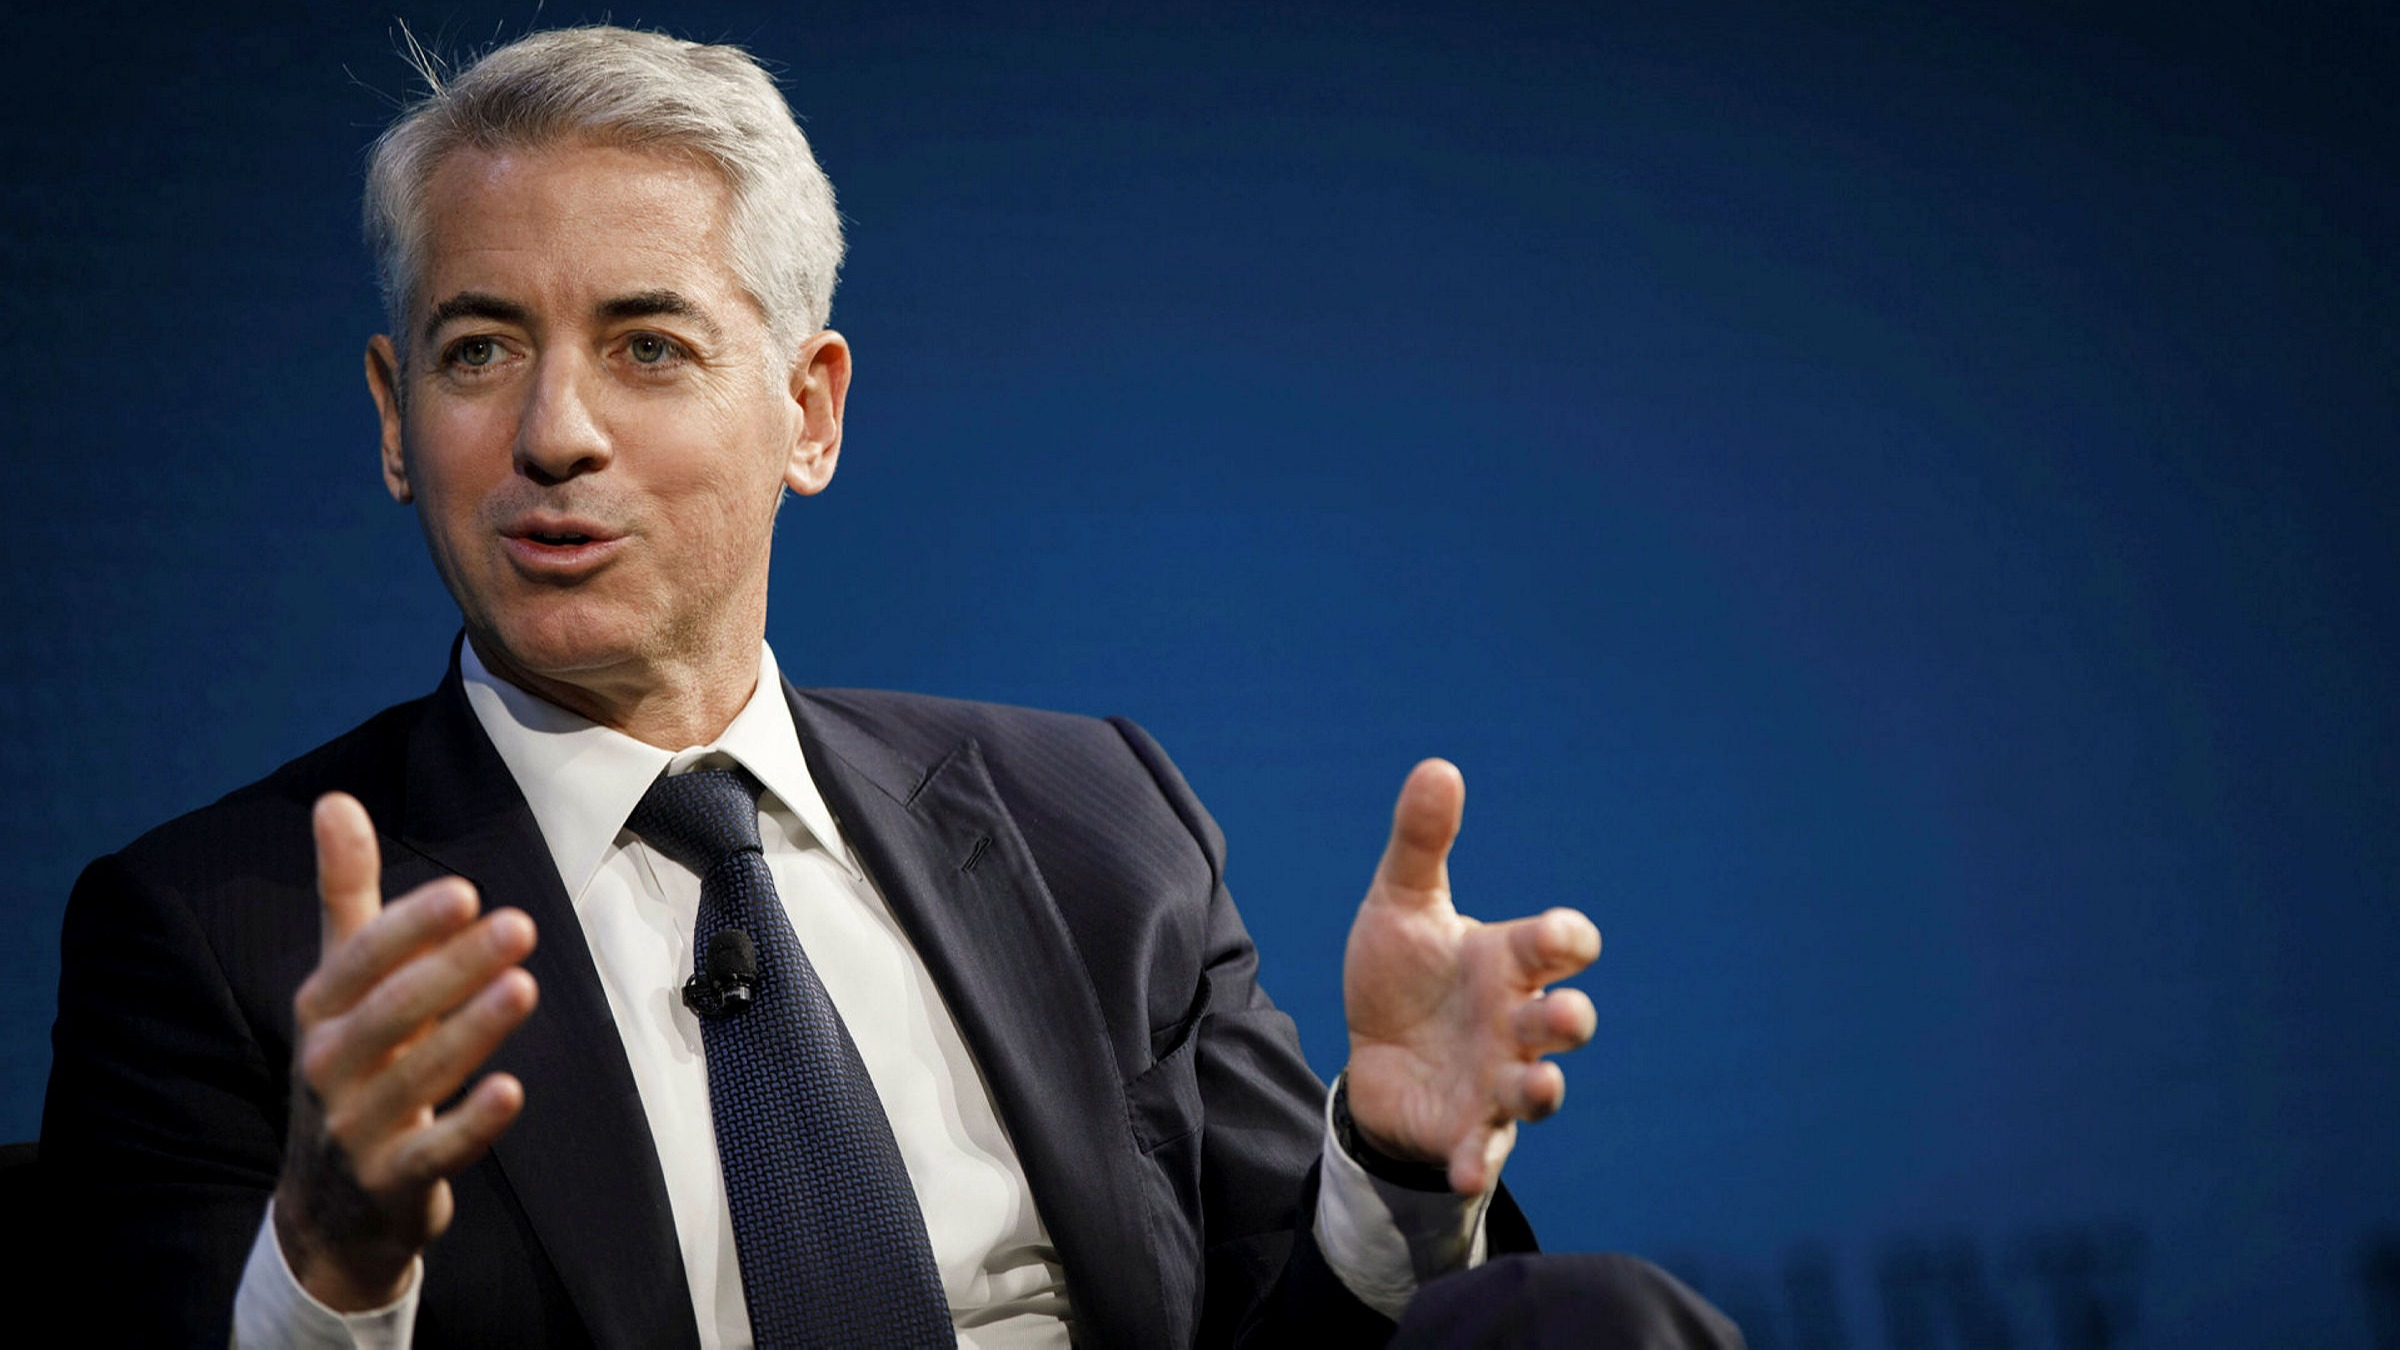 Airbnb turns down approach from Bill Ackman Spac | Financial Times